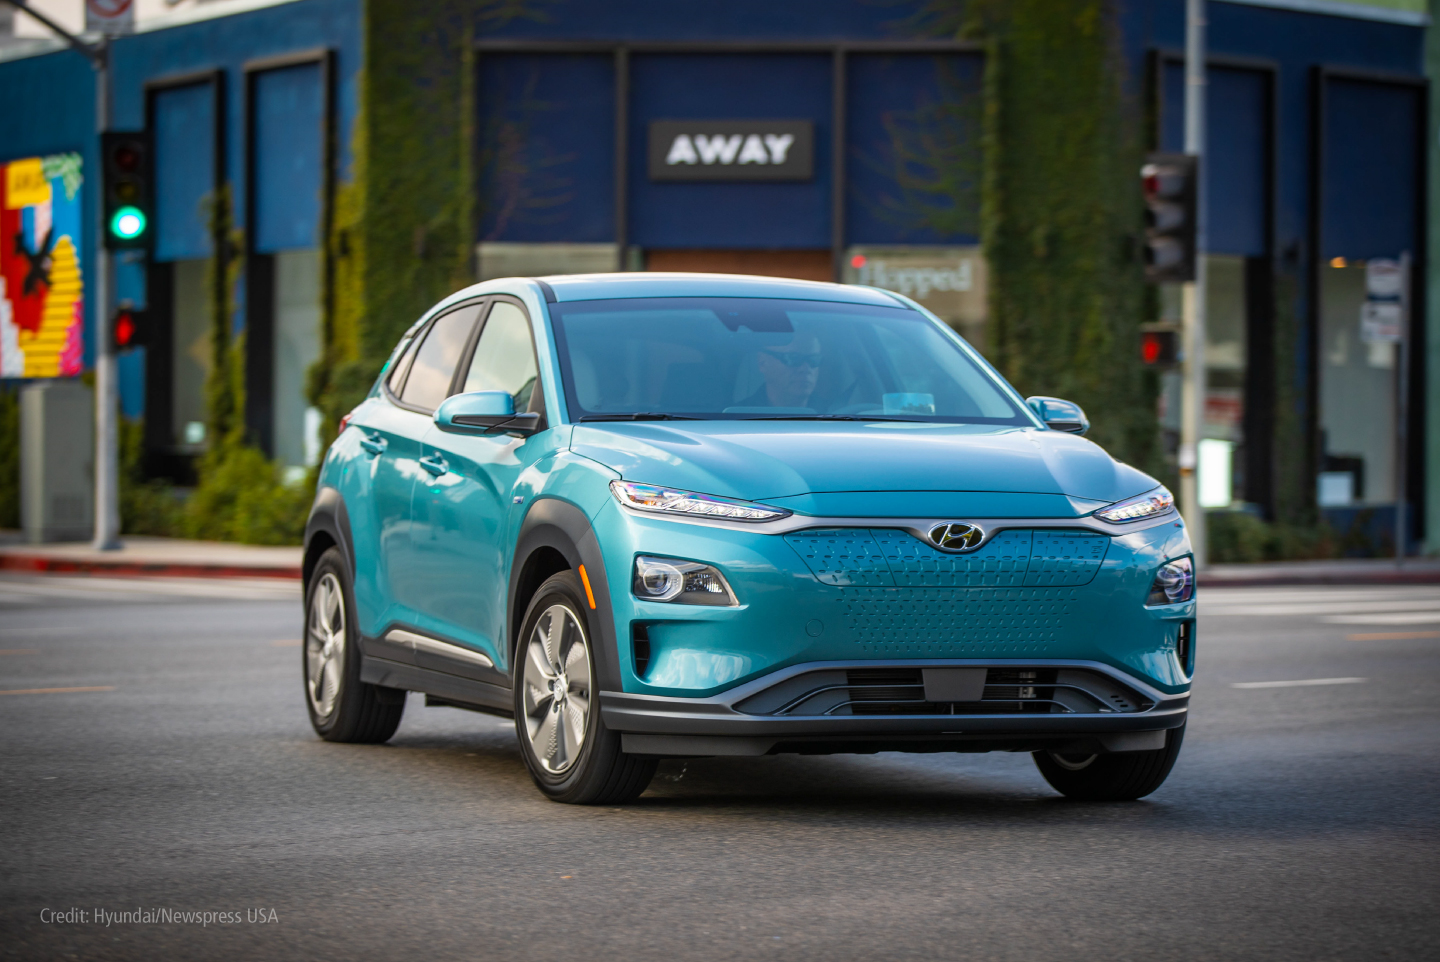 Hyundai Kona utility vehicle